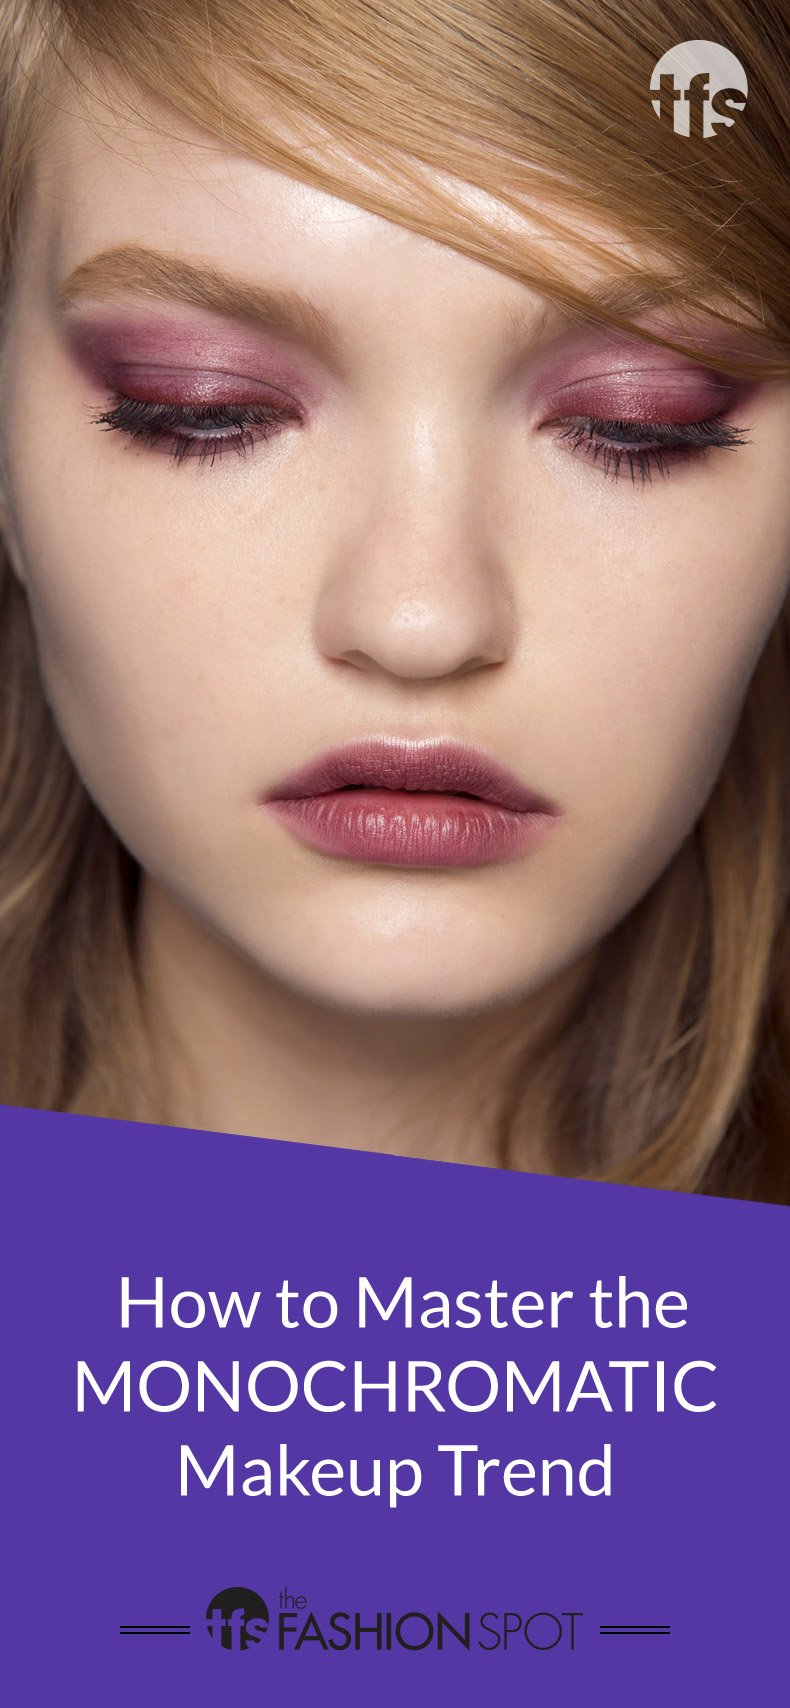 How to Wear This Season's Monochromatic Makeup Trend